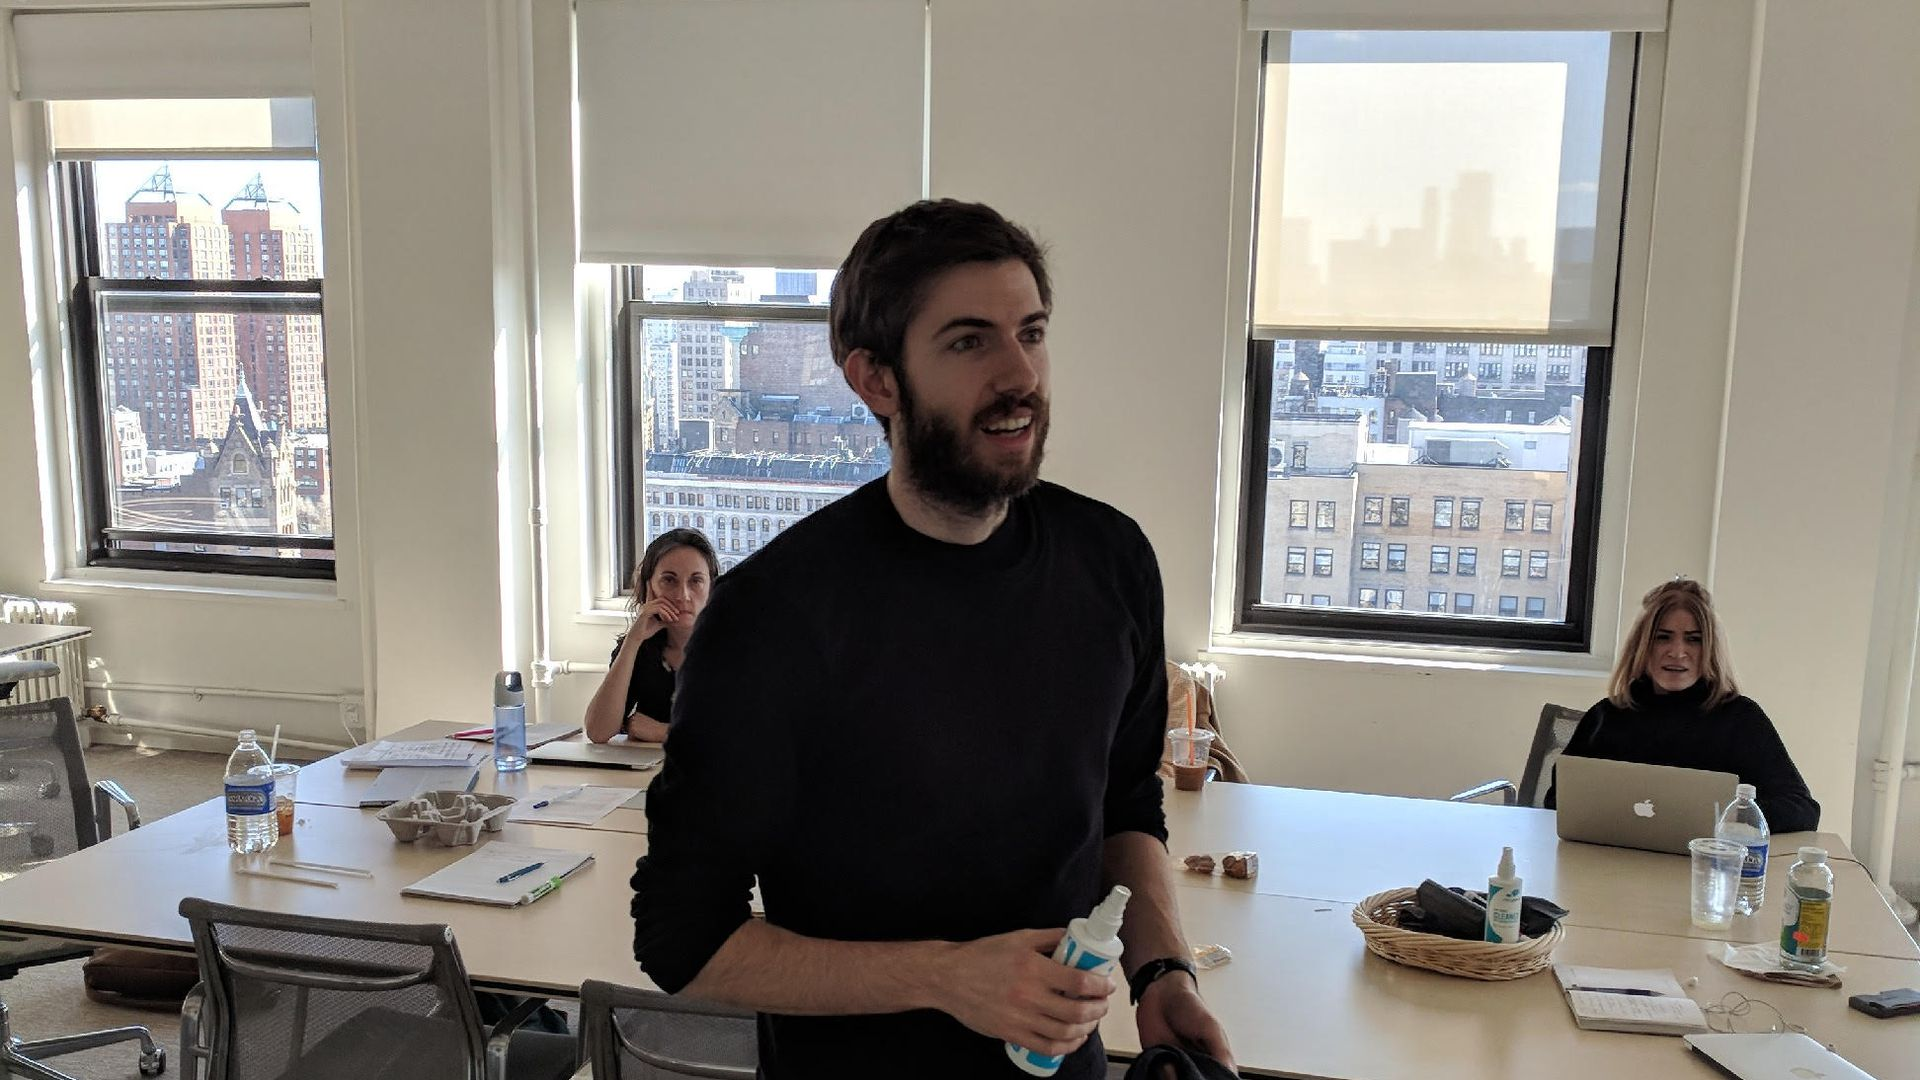 office tumblr. Tumblr Founder David Karp Joins Political Advocacy Group Office